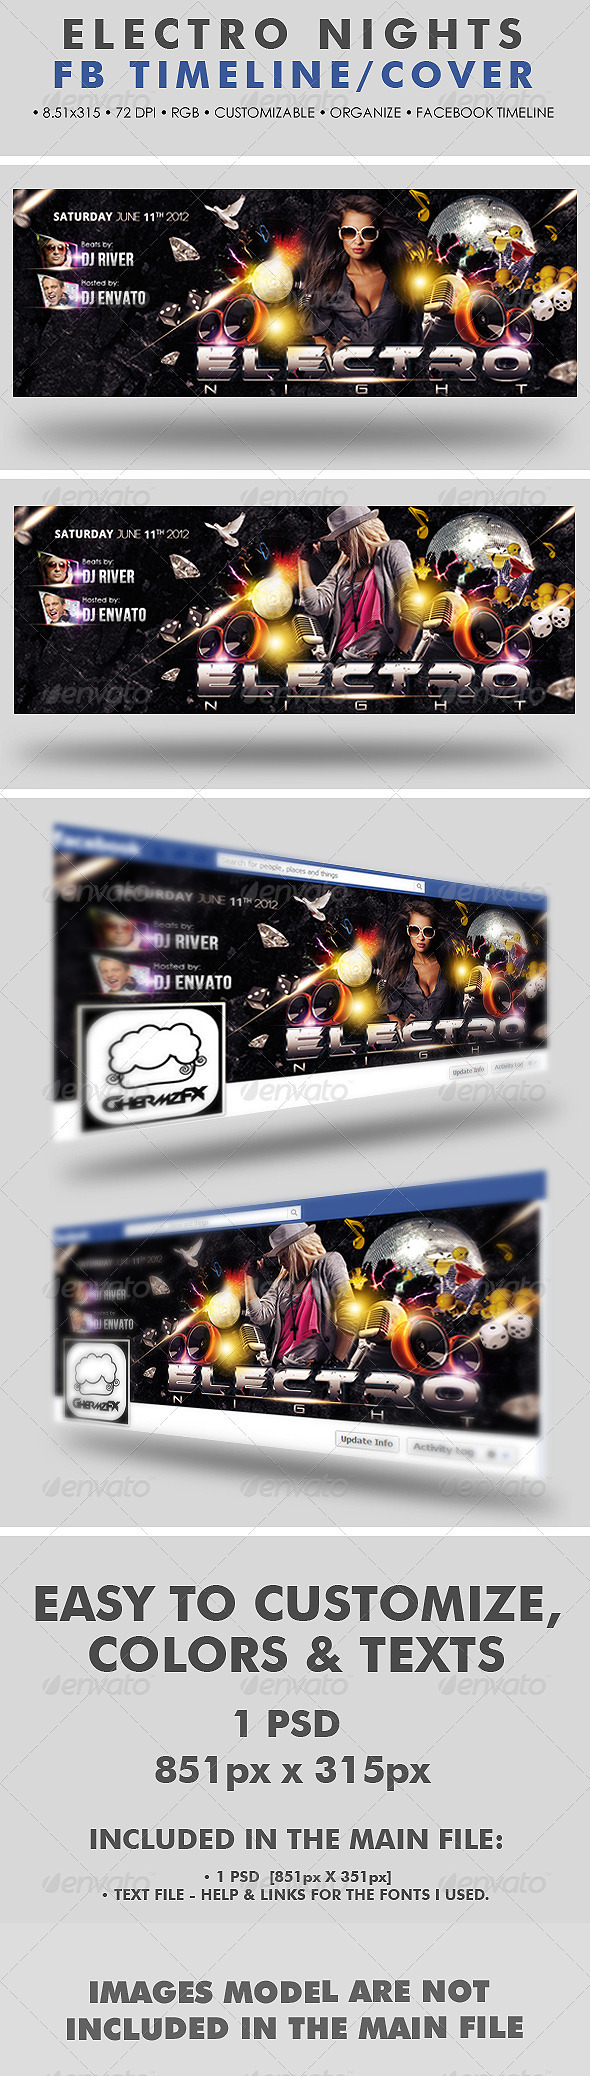 GraphicRiver Electro Nights Facebook Timeline Cover 2575447